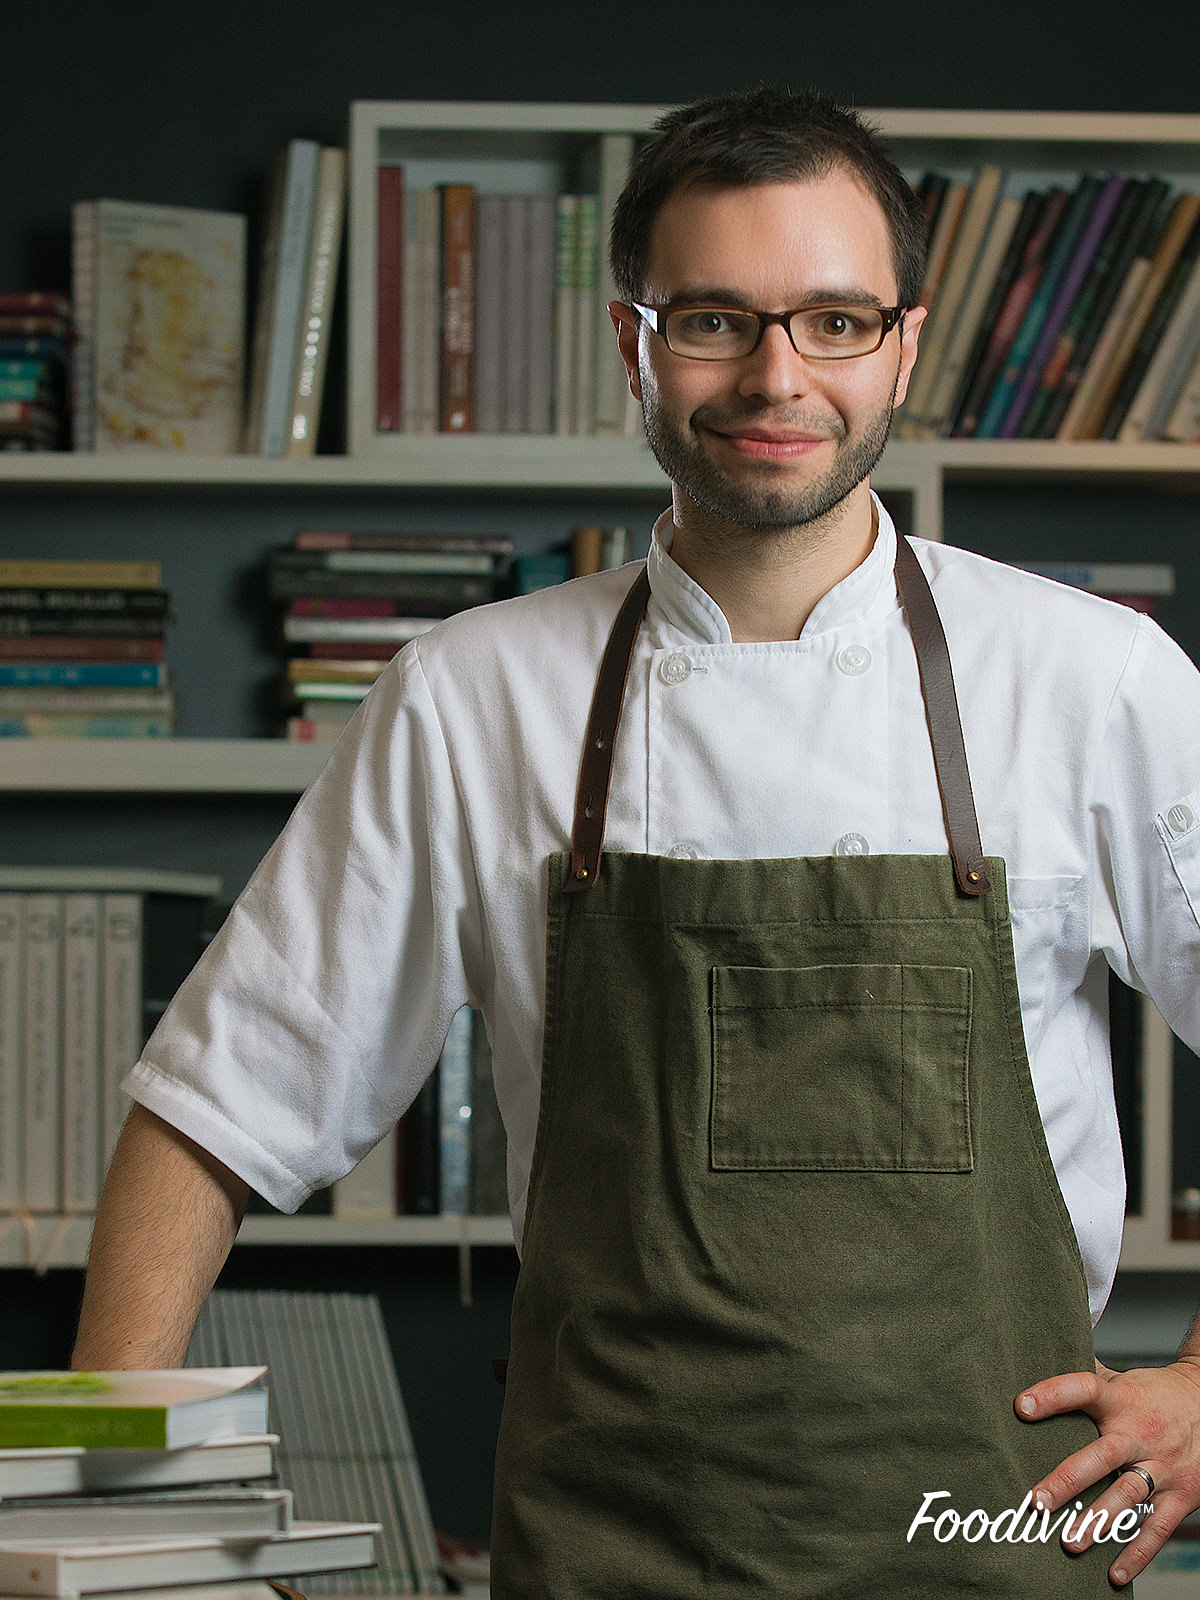 Patric Pastry Chef